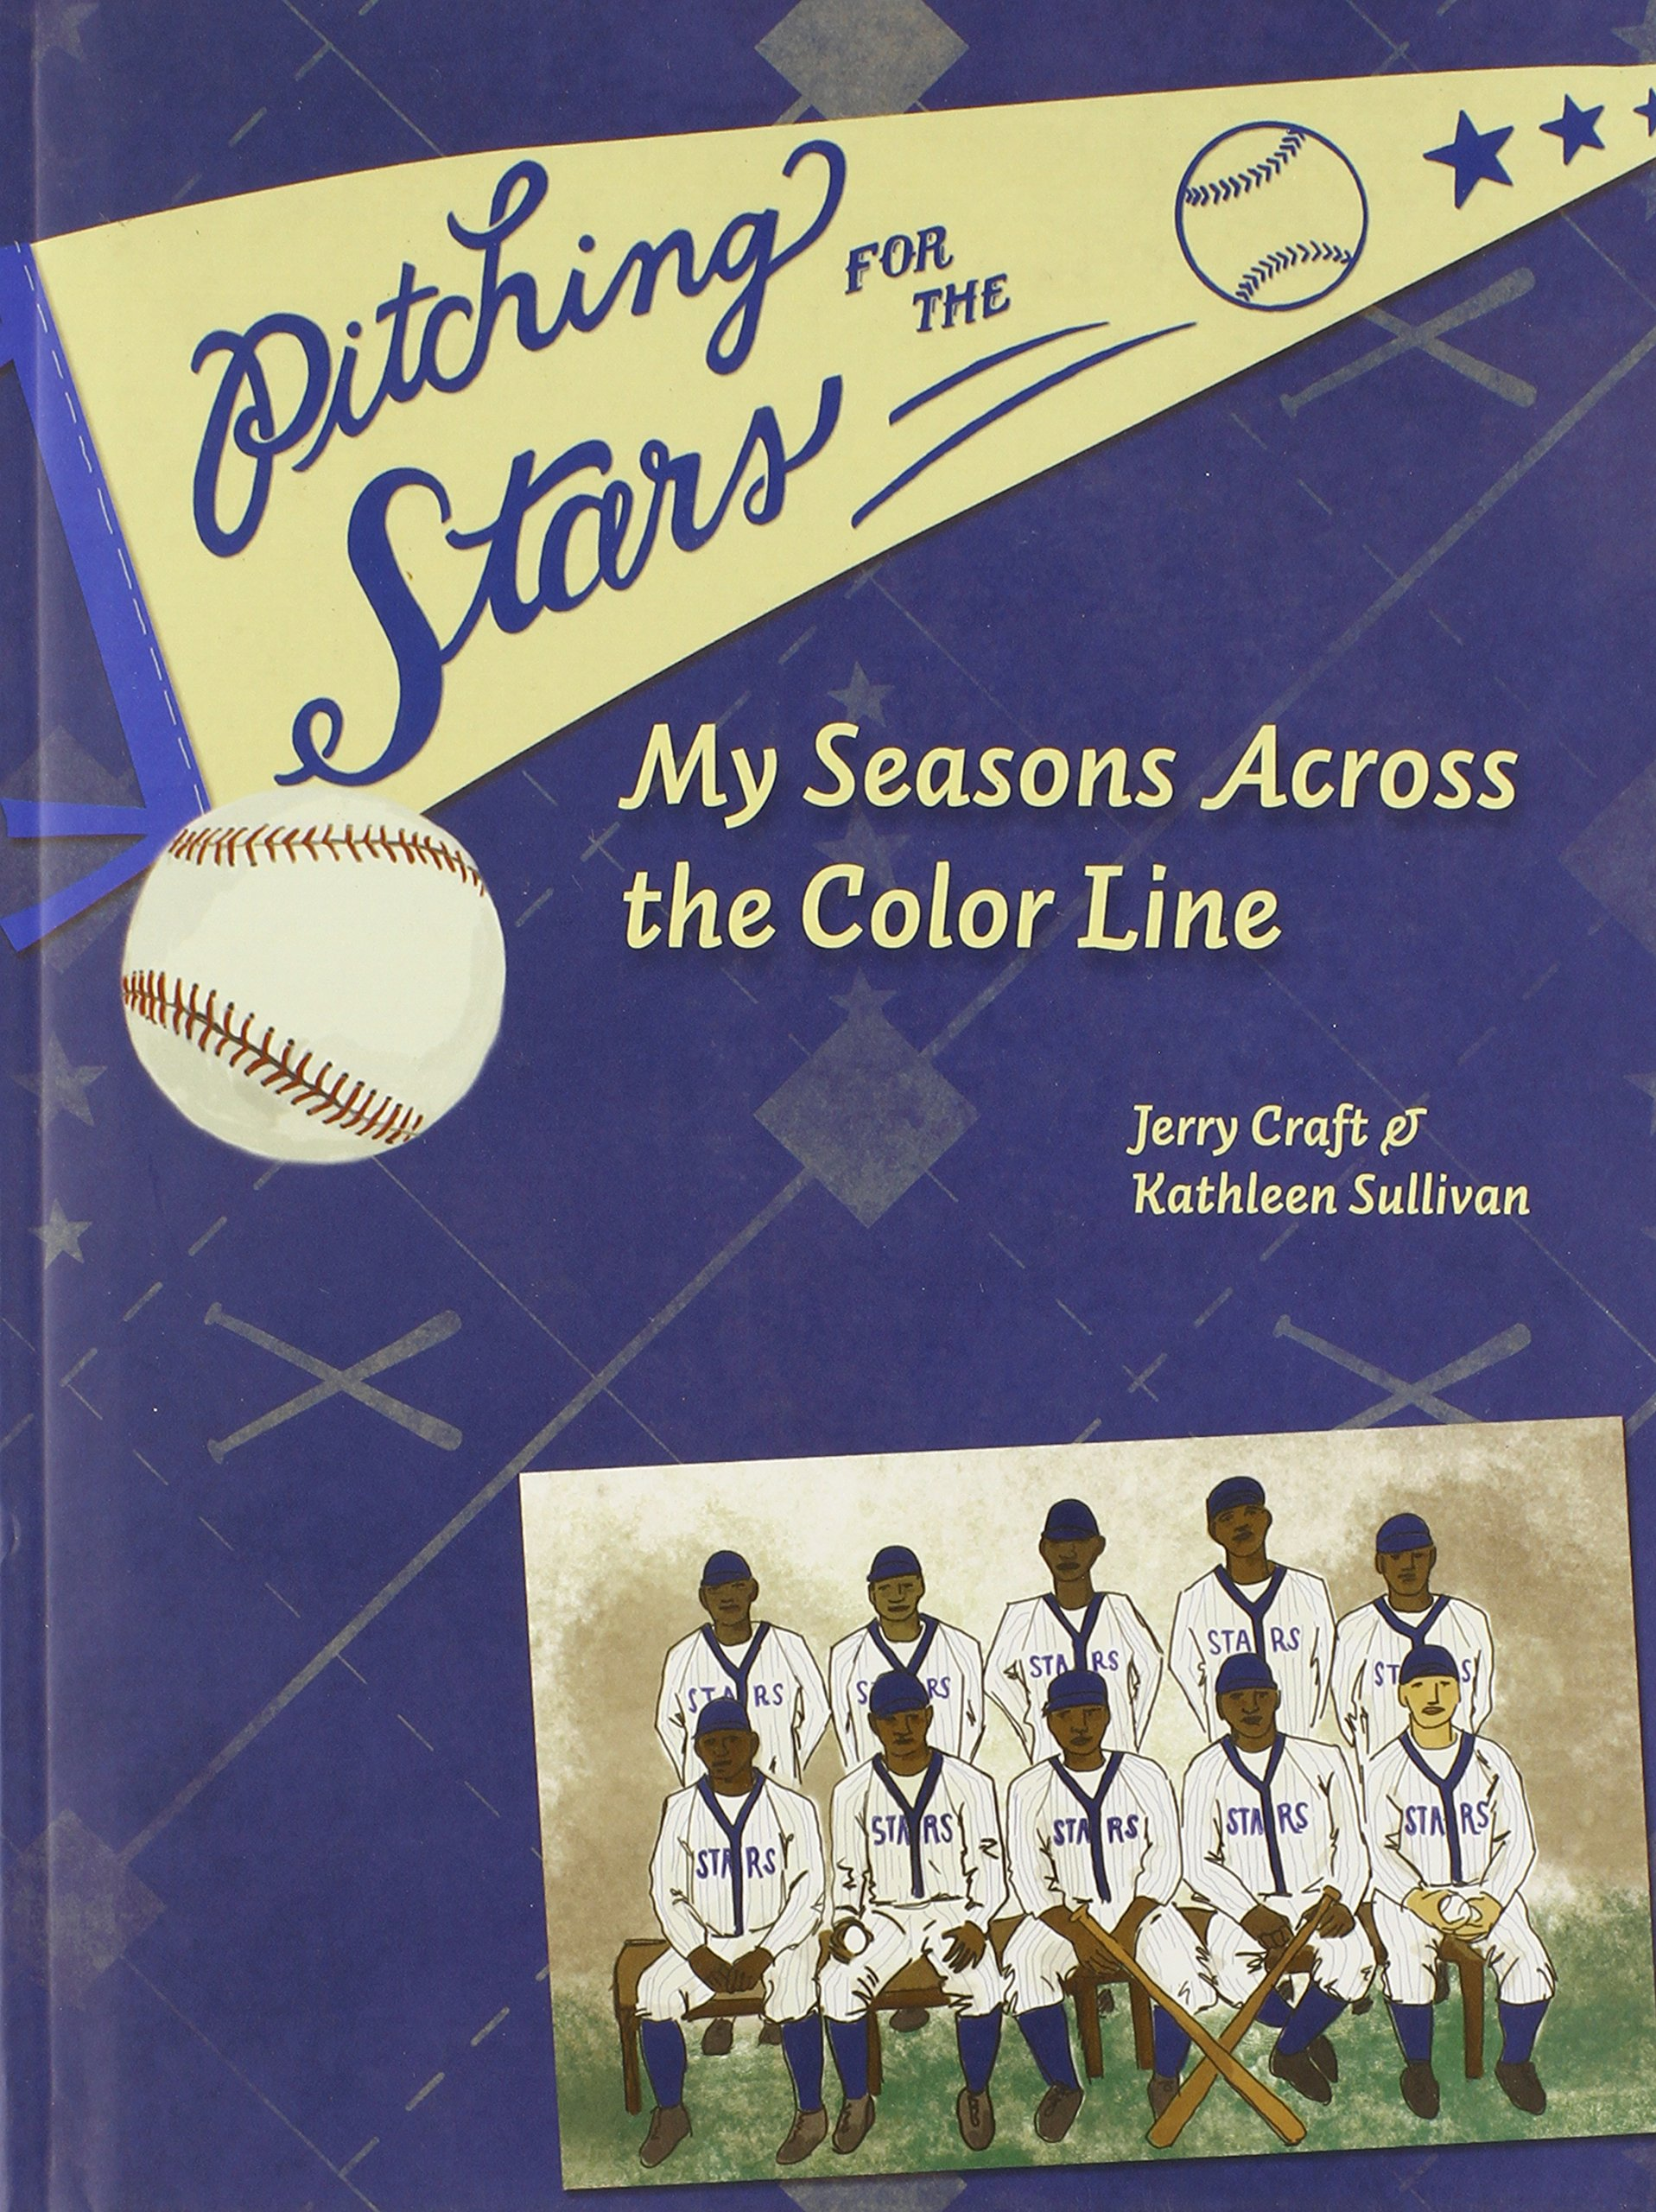 Pitching for the Stars: My Seasons Across the Color Line (Windword Books for Young Readers) PDF